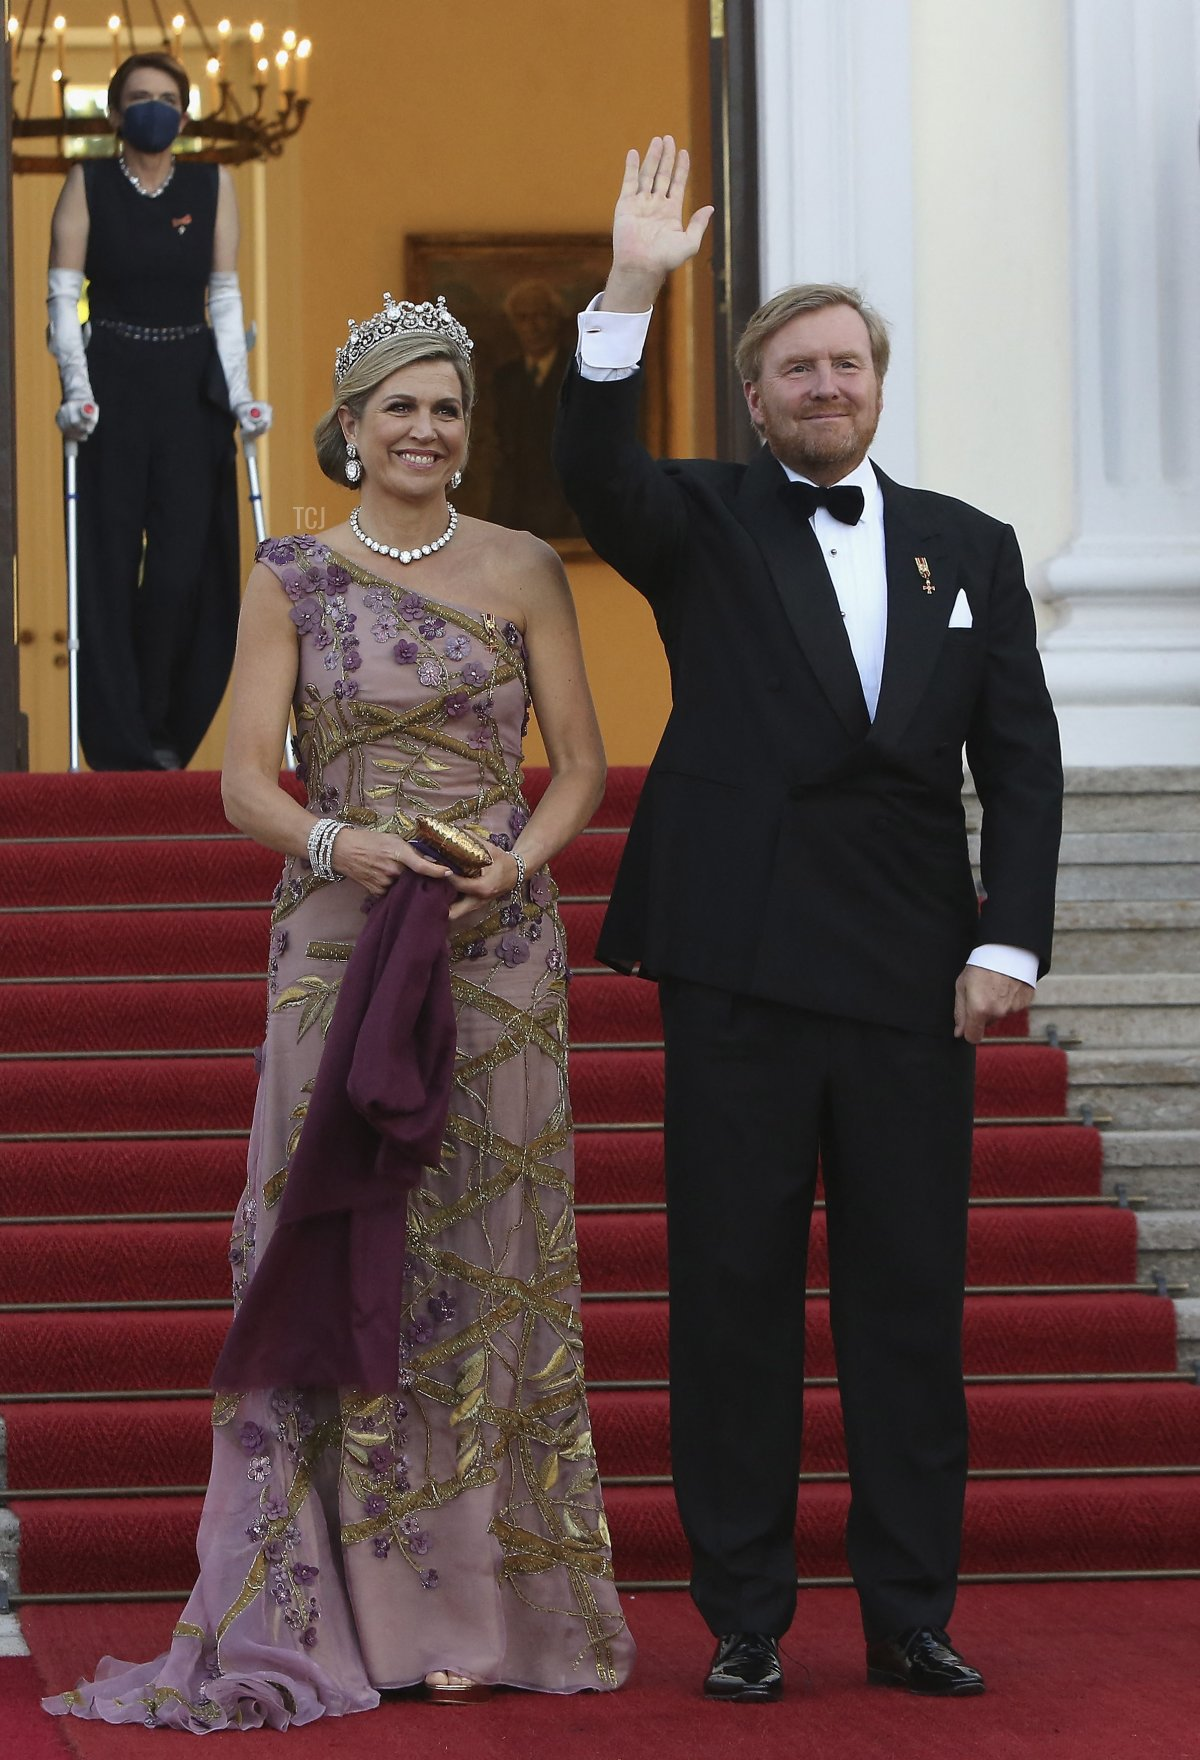 King Willem-Alexander and Queen Maxima of the Netherlands arrive for a state dinner in their honour at the Bellevue presidential palace in Berlin on July 5, 2021